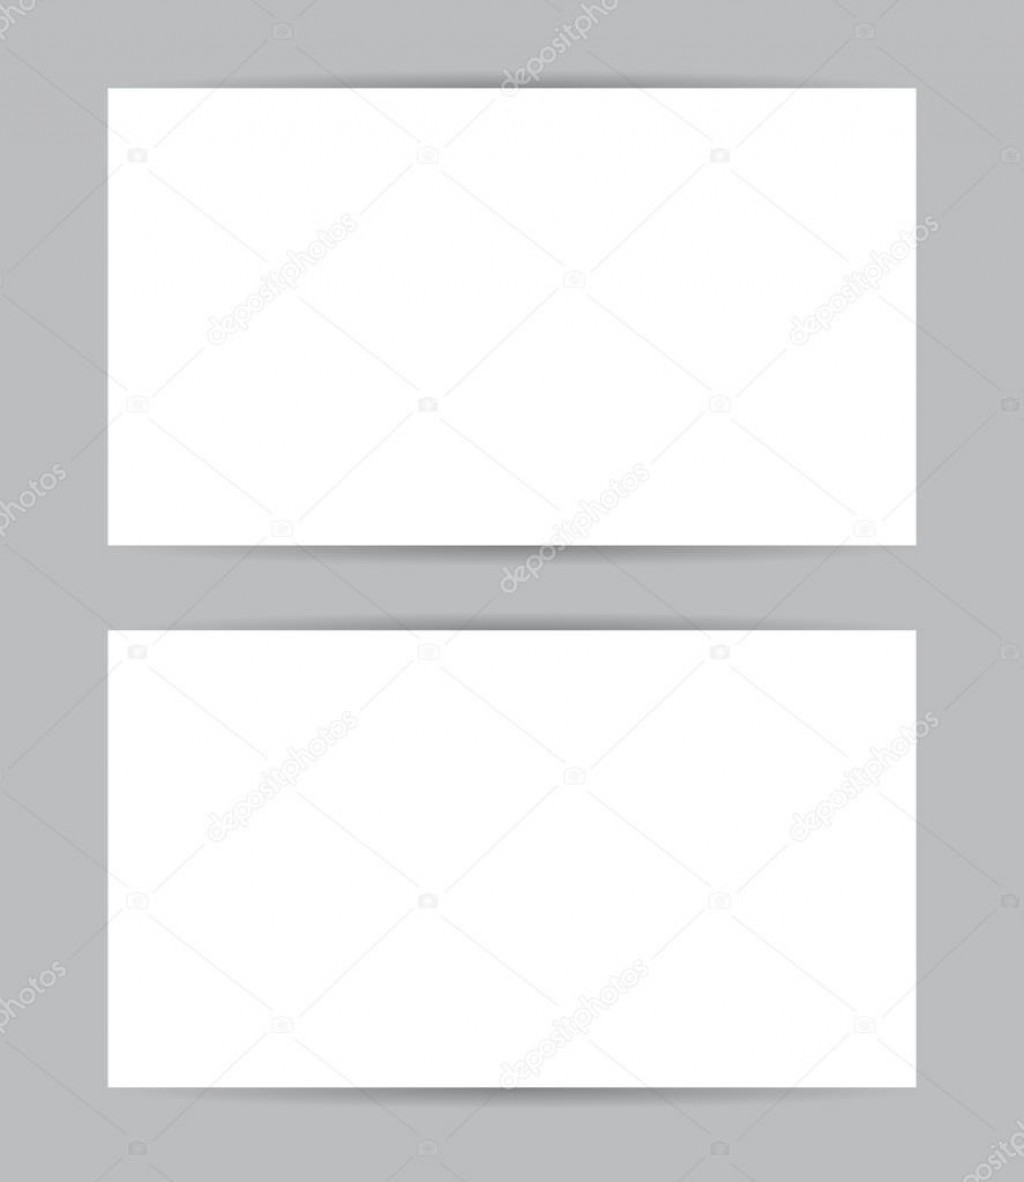 008 Incredible Busines Card Blank Template Example  Download FreeLarge